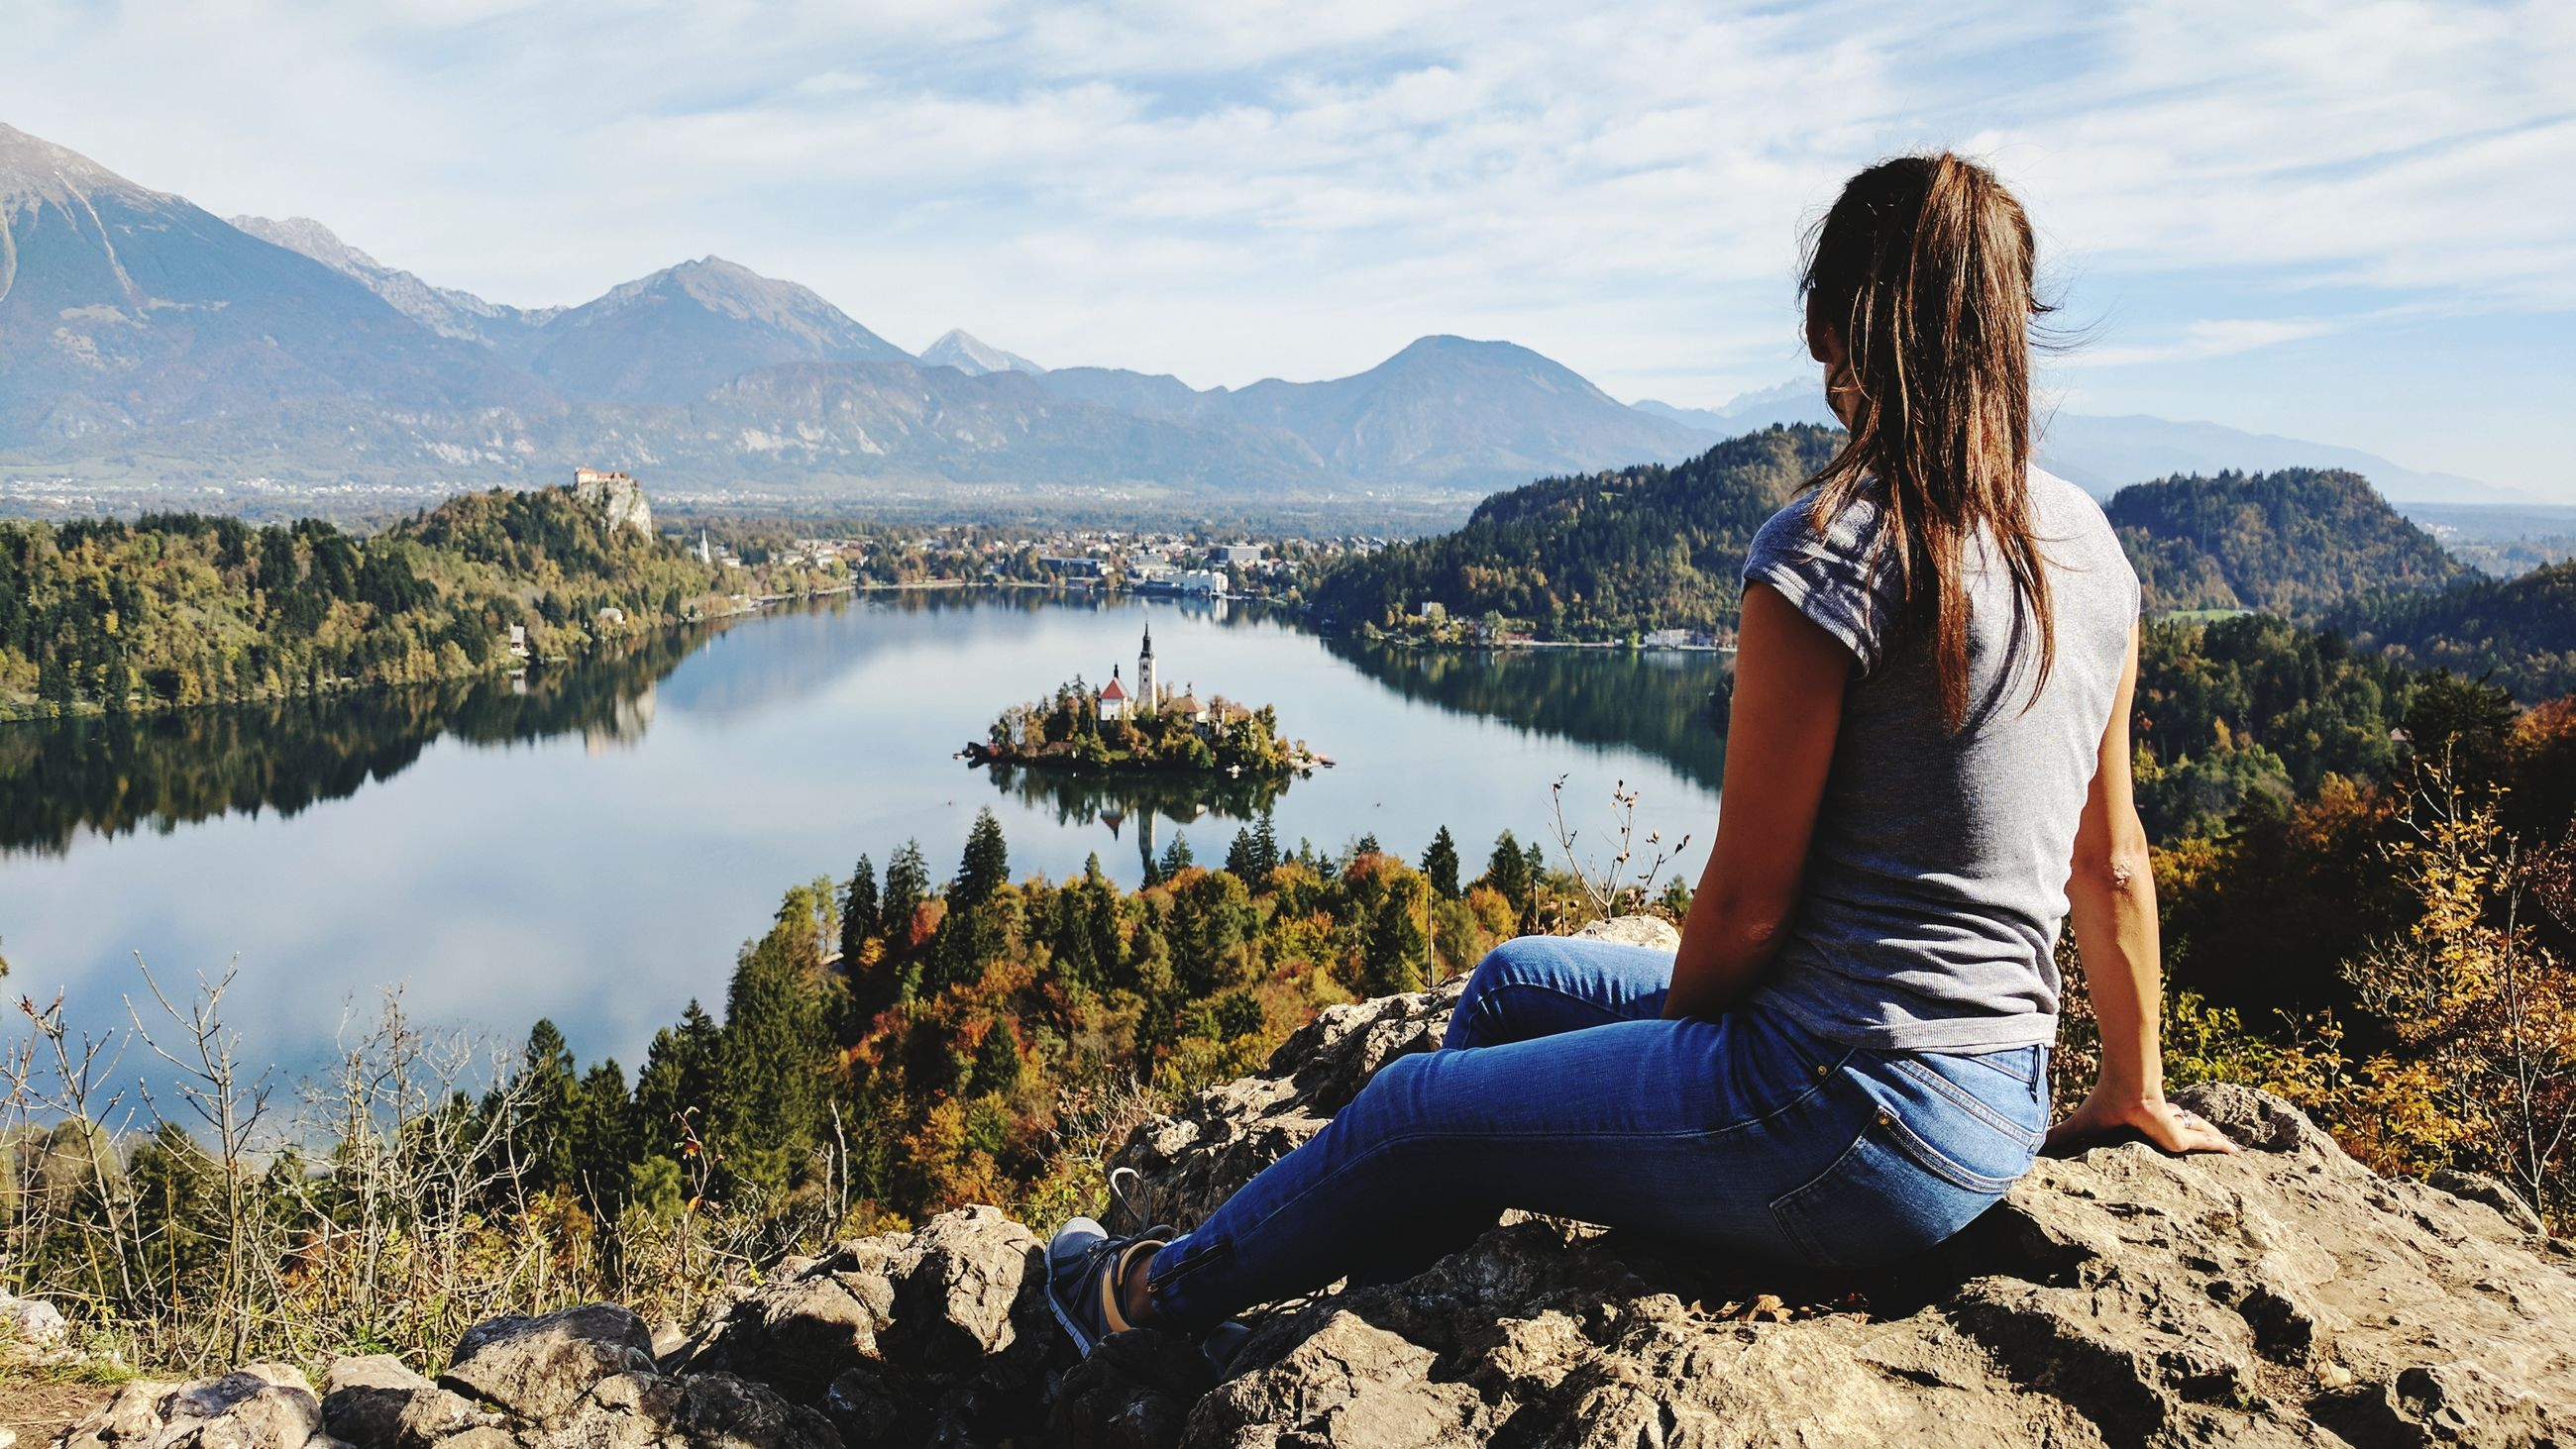 Rear view of woman sitting on rock by lake against sky